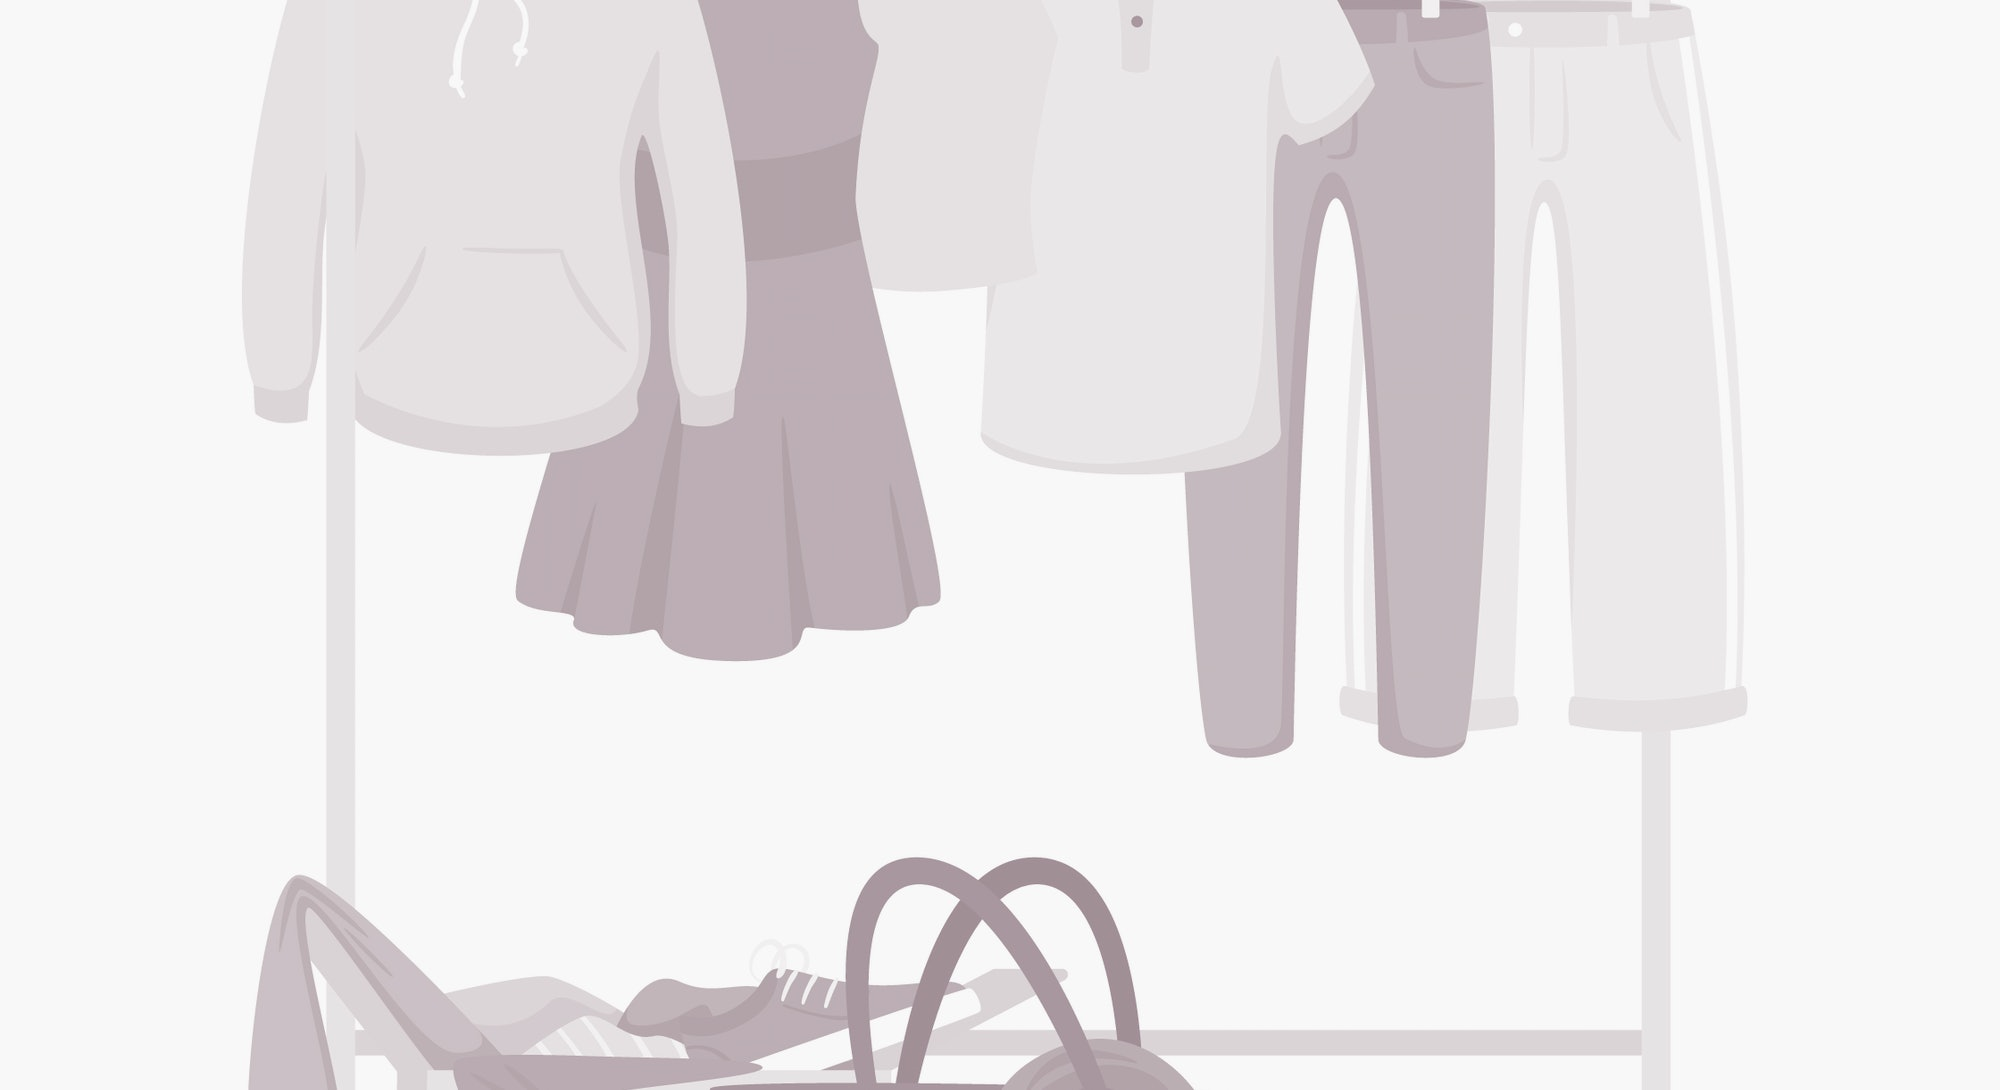 Clothes and accessories hanging on rack vector illustration. Fashion boutique, showroom assortment. Female personal wardrobe, closet. Trousers, summer dress on hangers. Woman bag and shoes in box